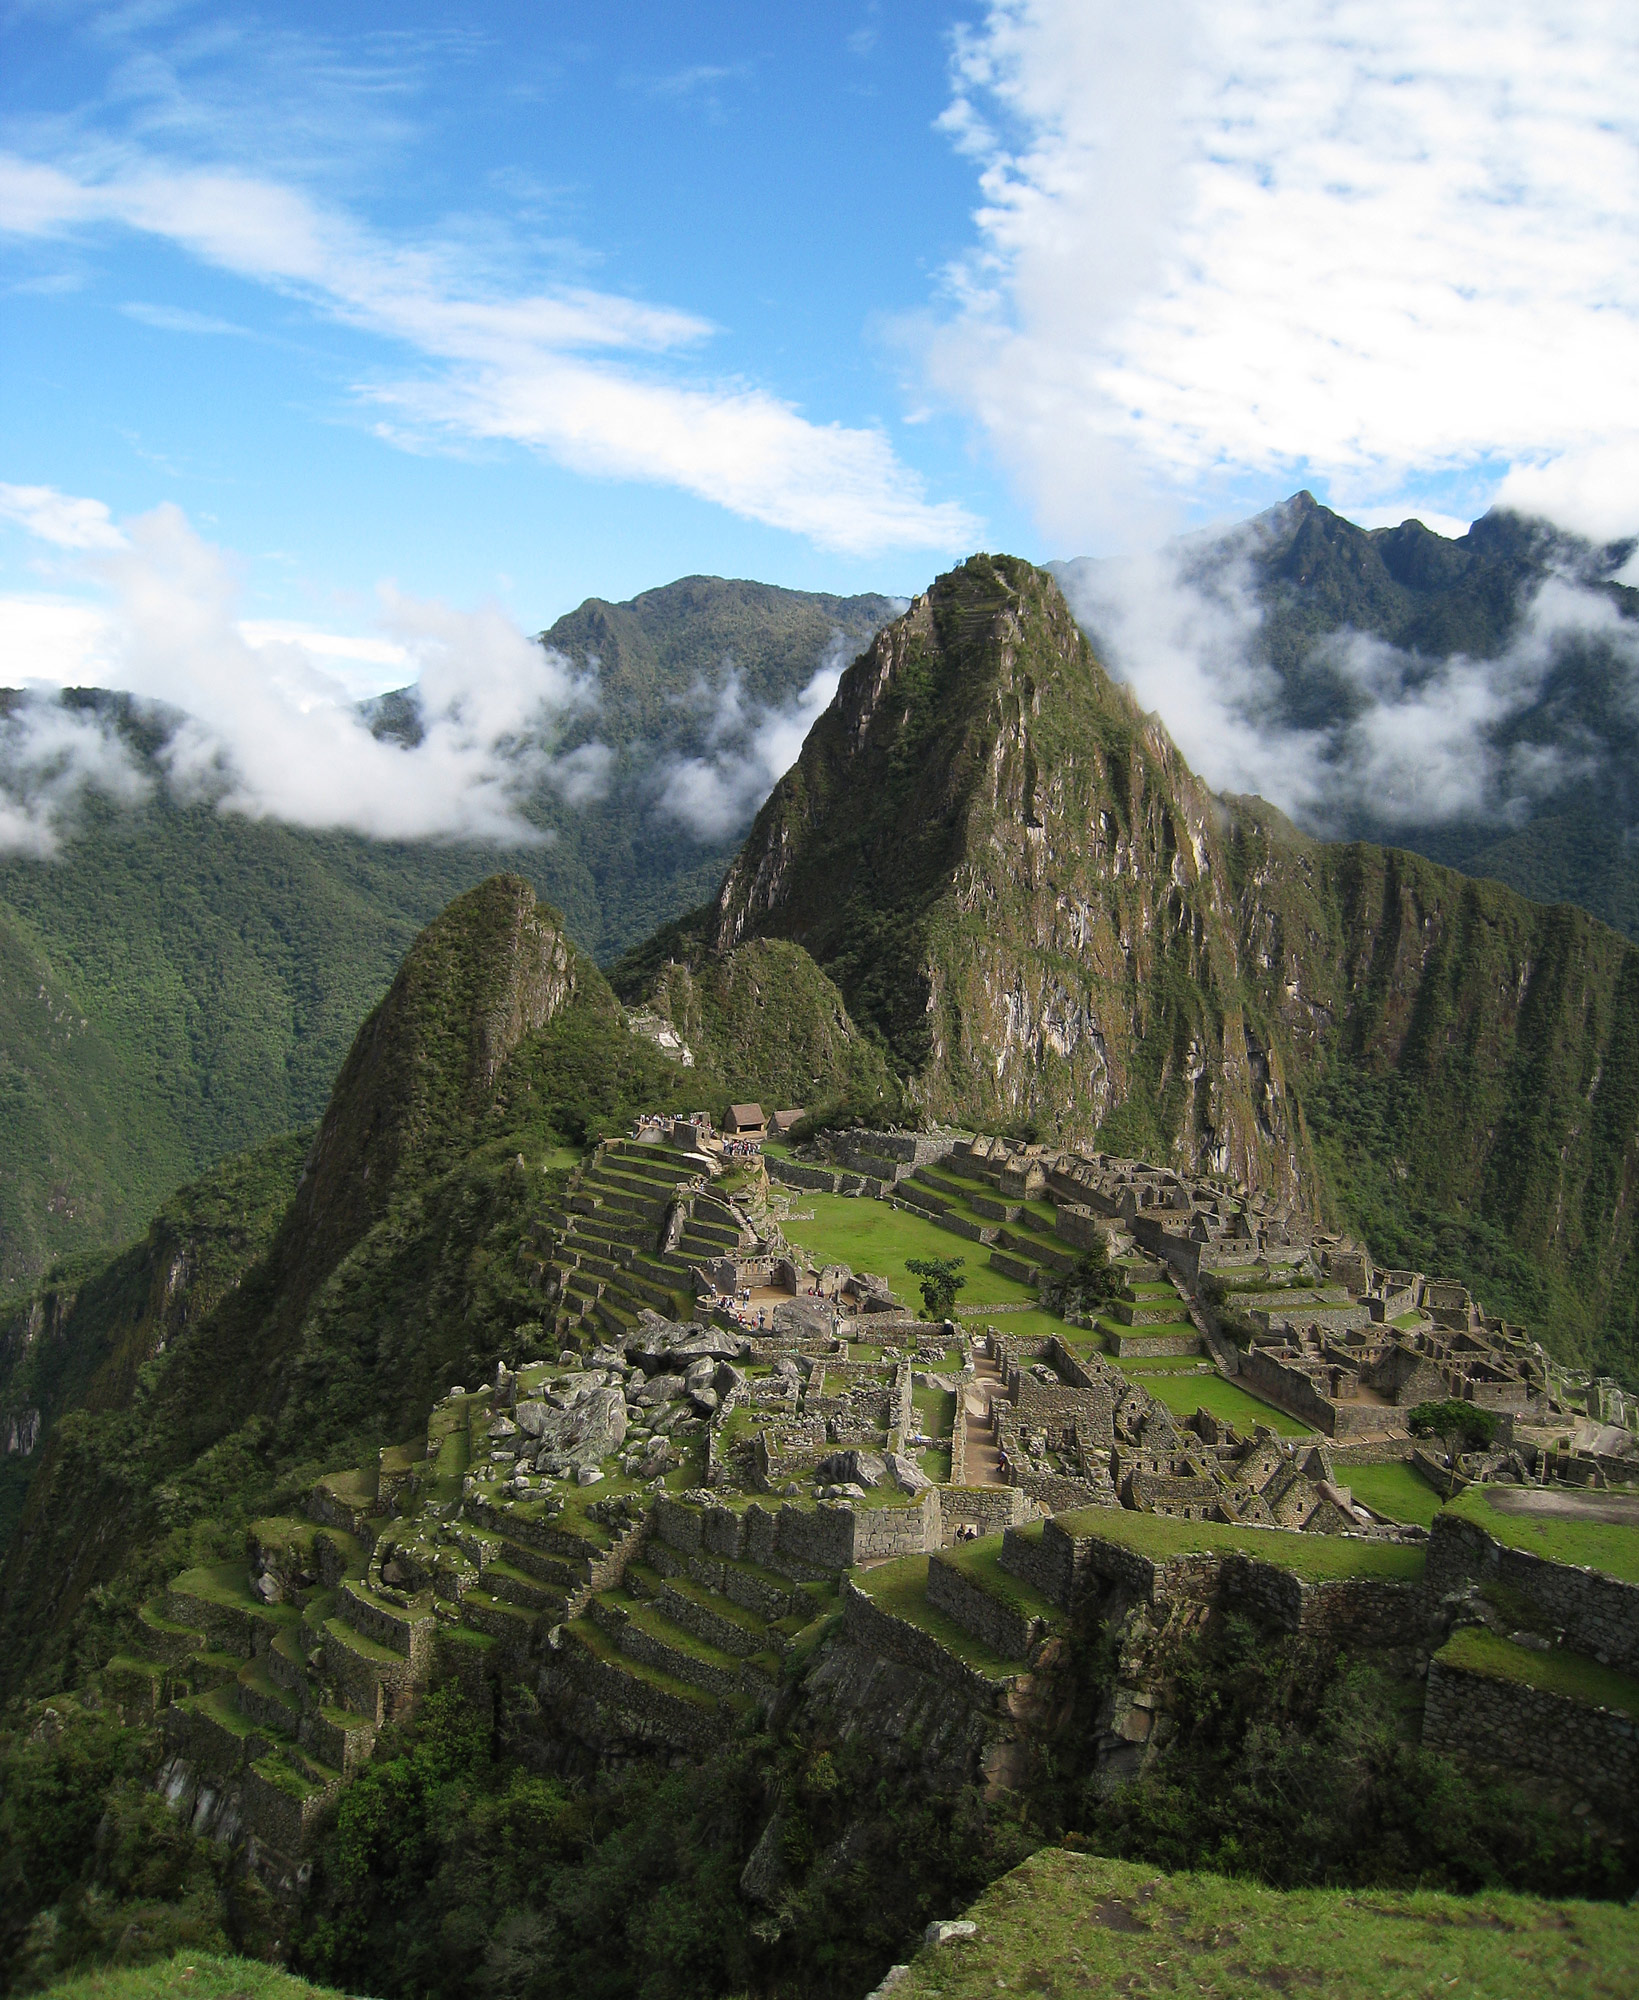 Peru's most well-known ancient ruins, Machu Picchu. Photo by Flickr user Icelight (CC BY).